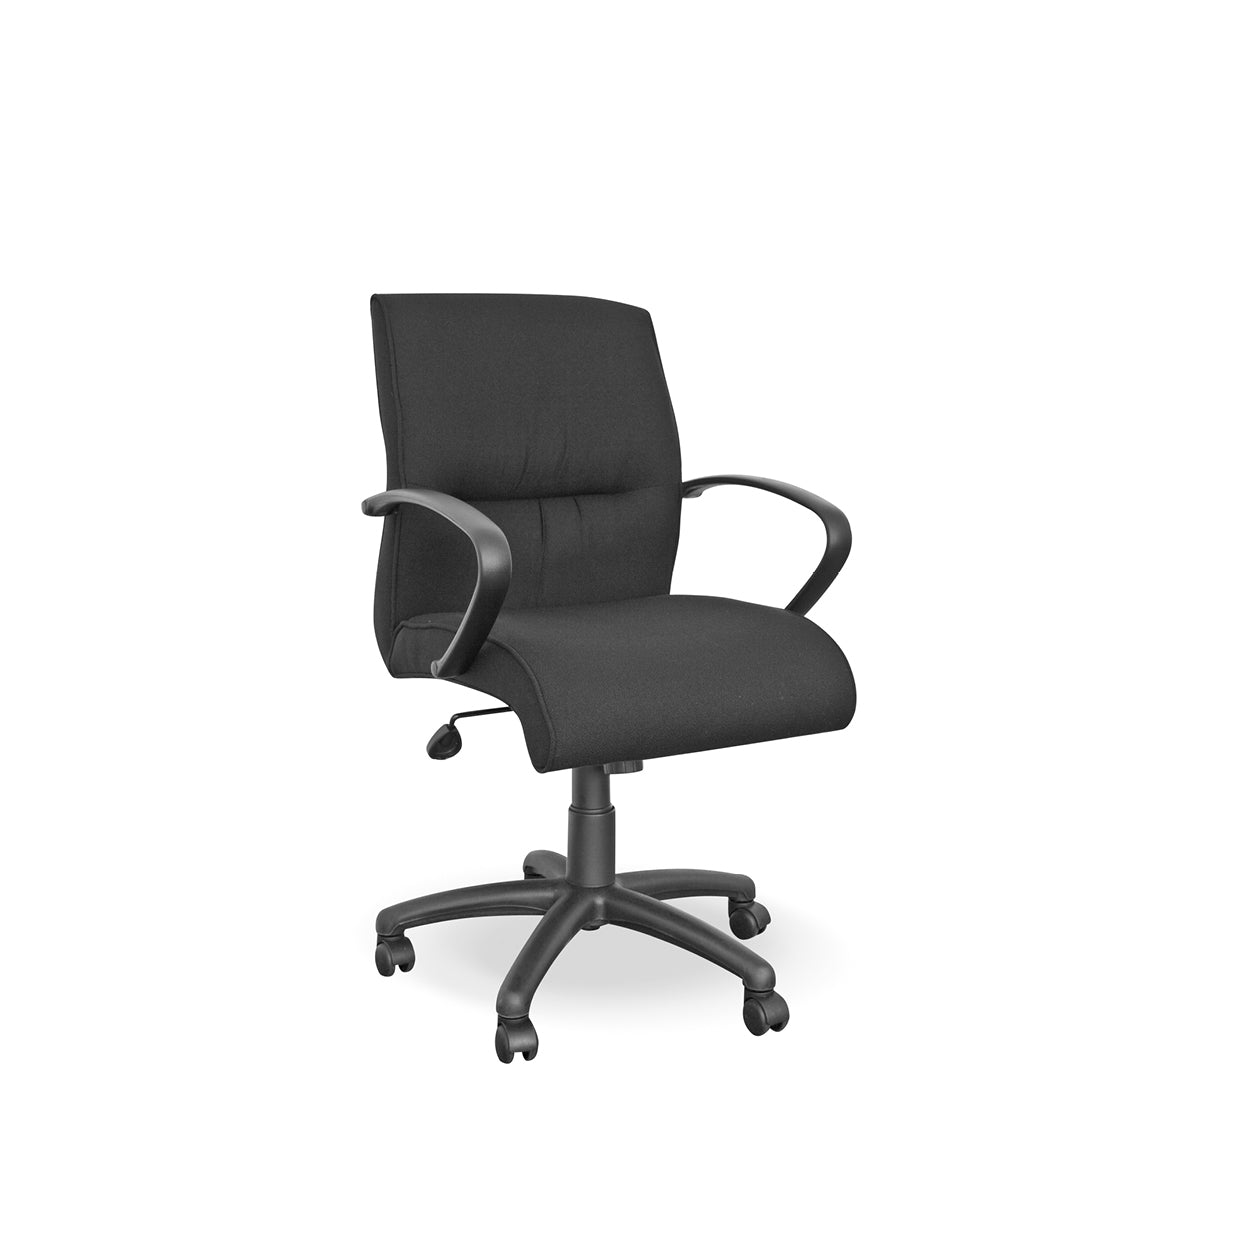 Hedcor Salvador PU office chair